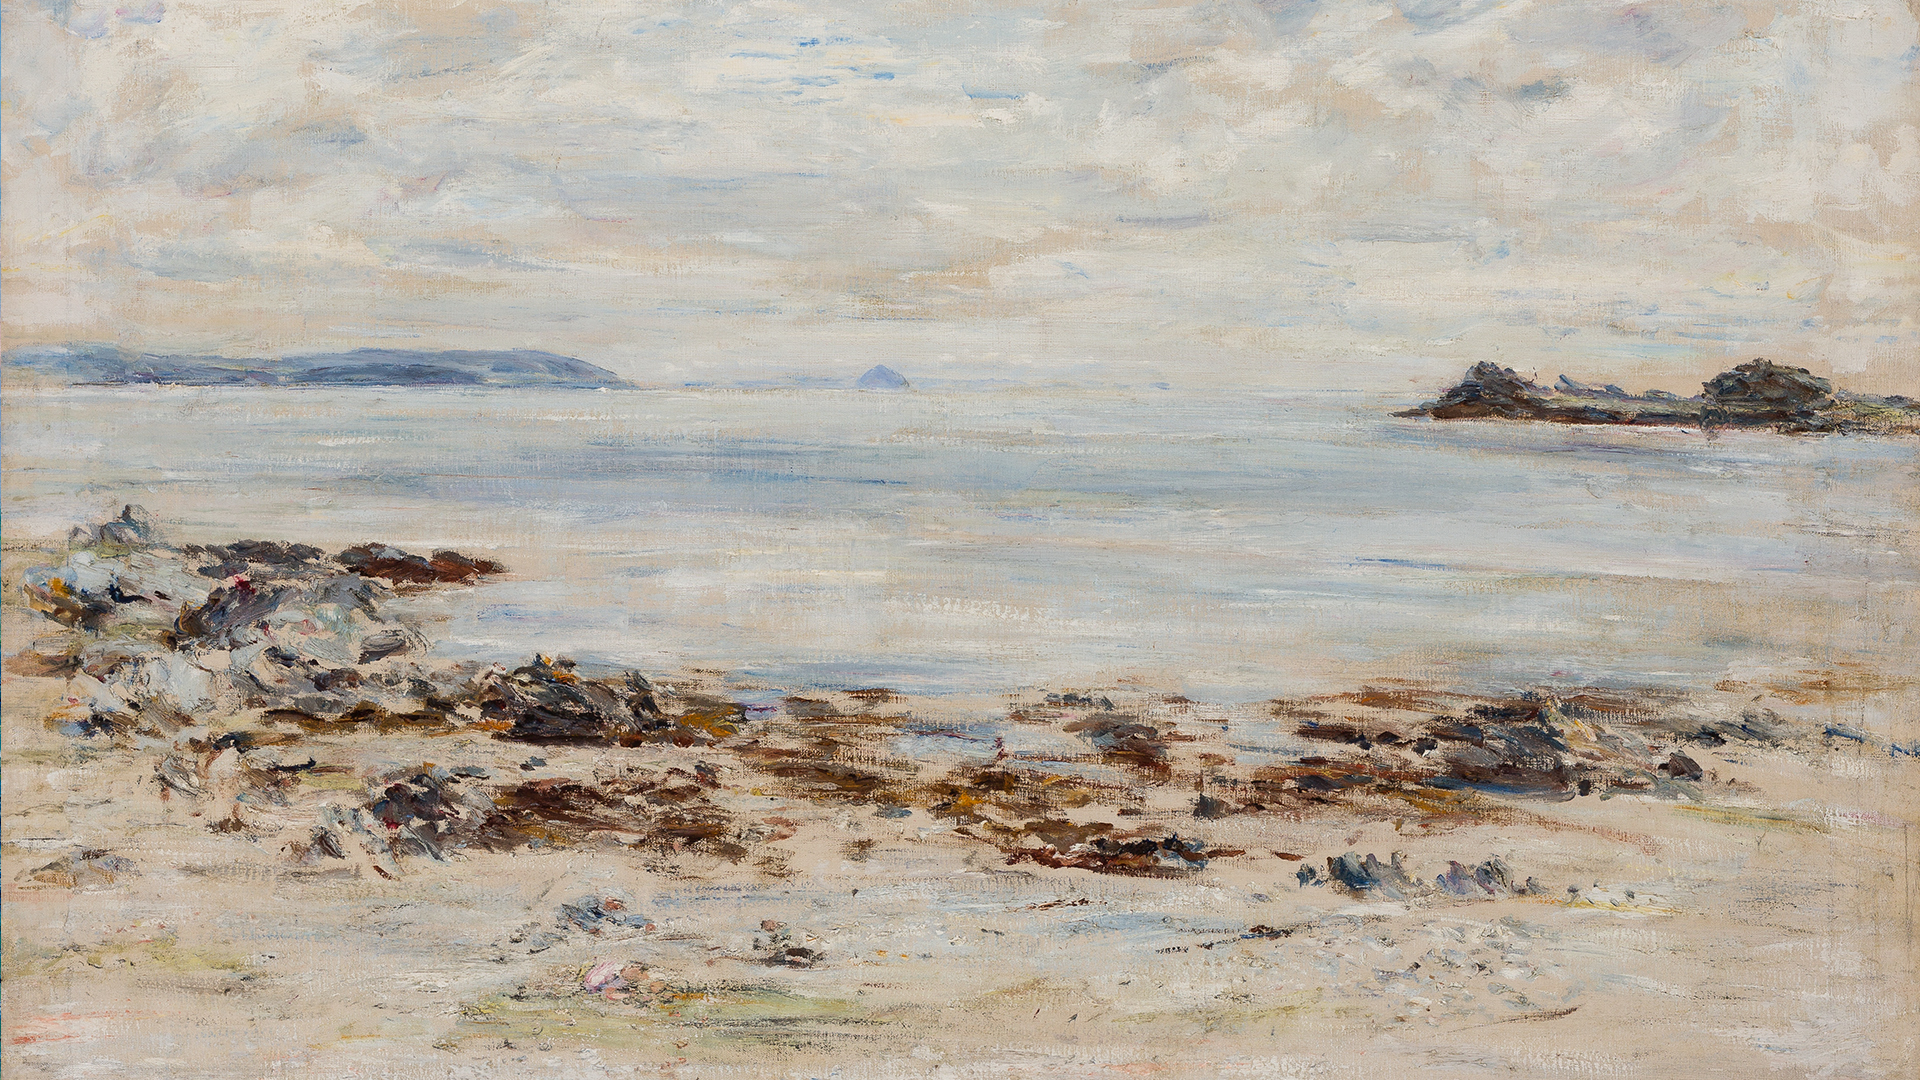 The-White-Calm-Ailsa-Craig-from-Port-an-Righ-1901-by-William-McTaggart